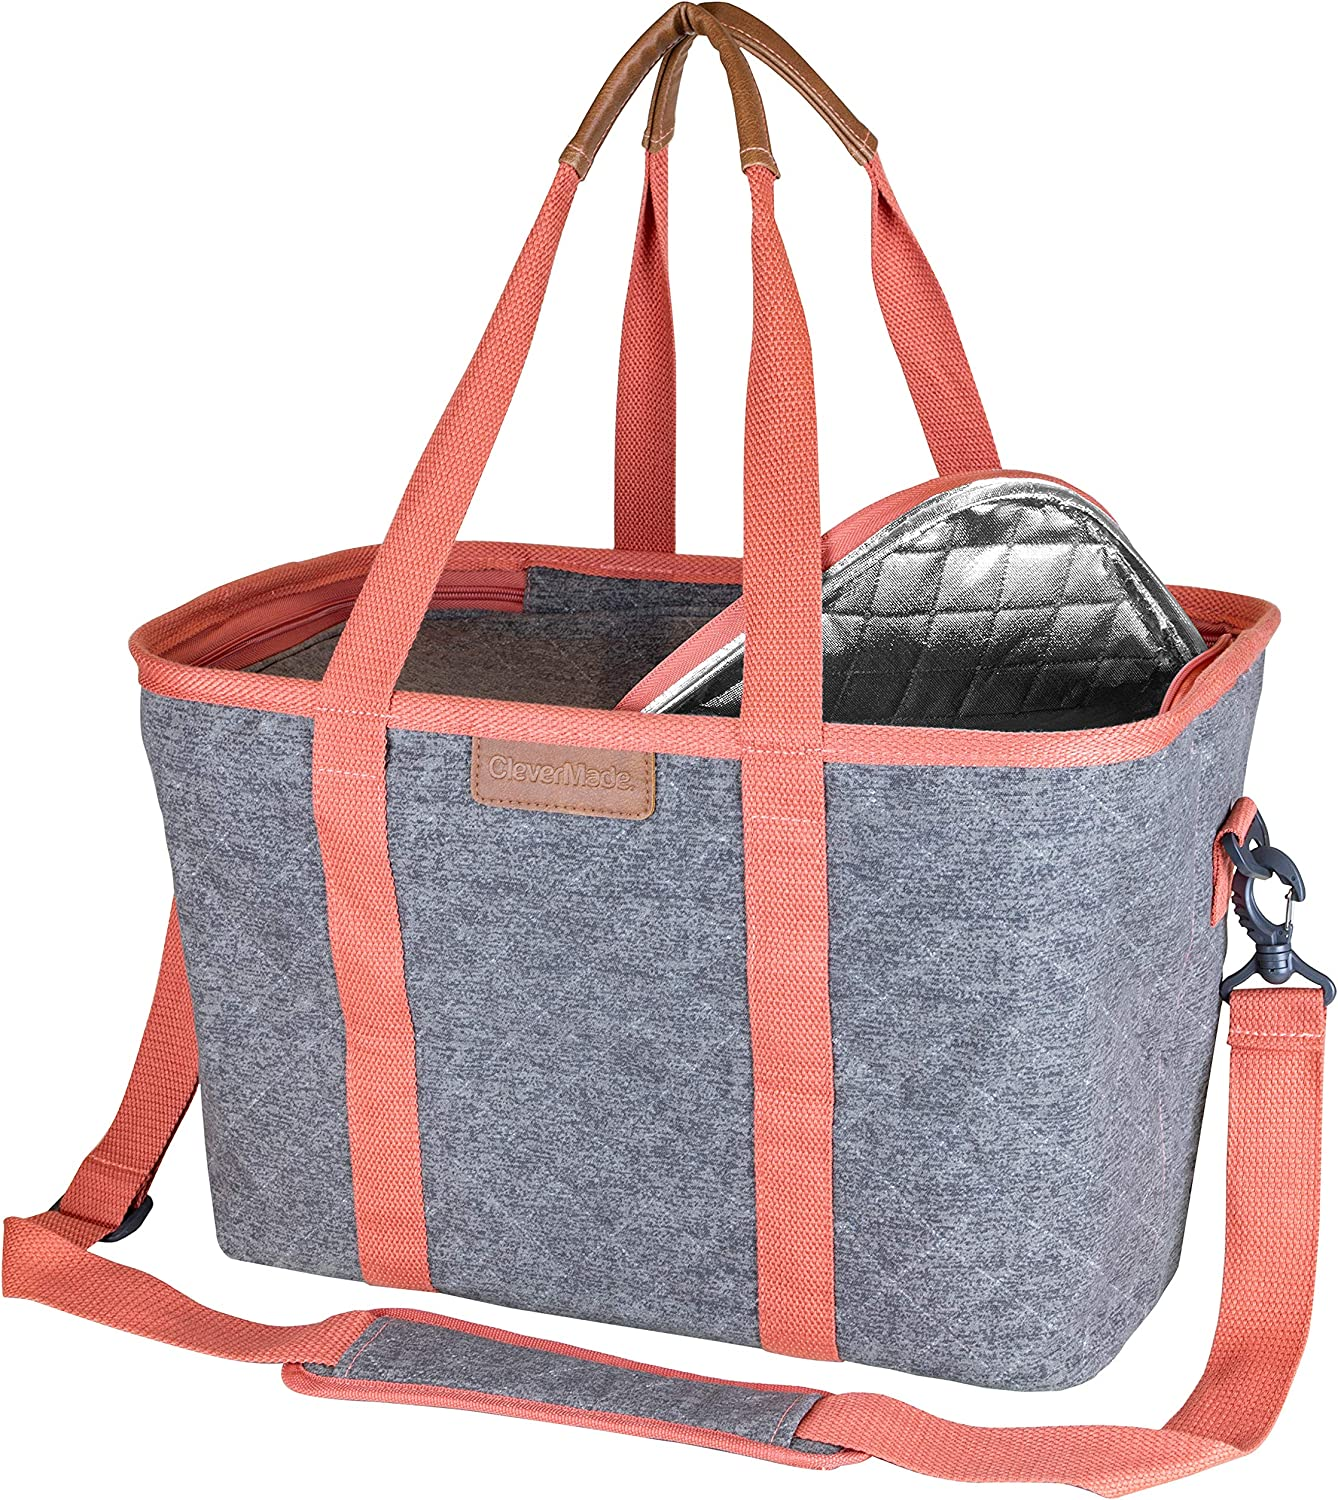 CleverMade SnapBasket Insulated Reusable Grocery Shopping Bag with Shoulder Strap, Reinforced Bottom and Zippered Lid, Collapsible Picnic and Food Delivery Tote, 30L Size, Heather Grey/Coral